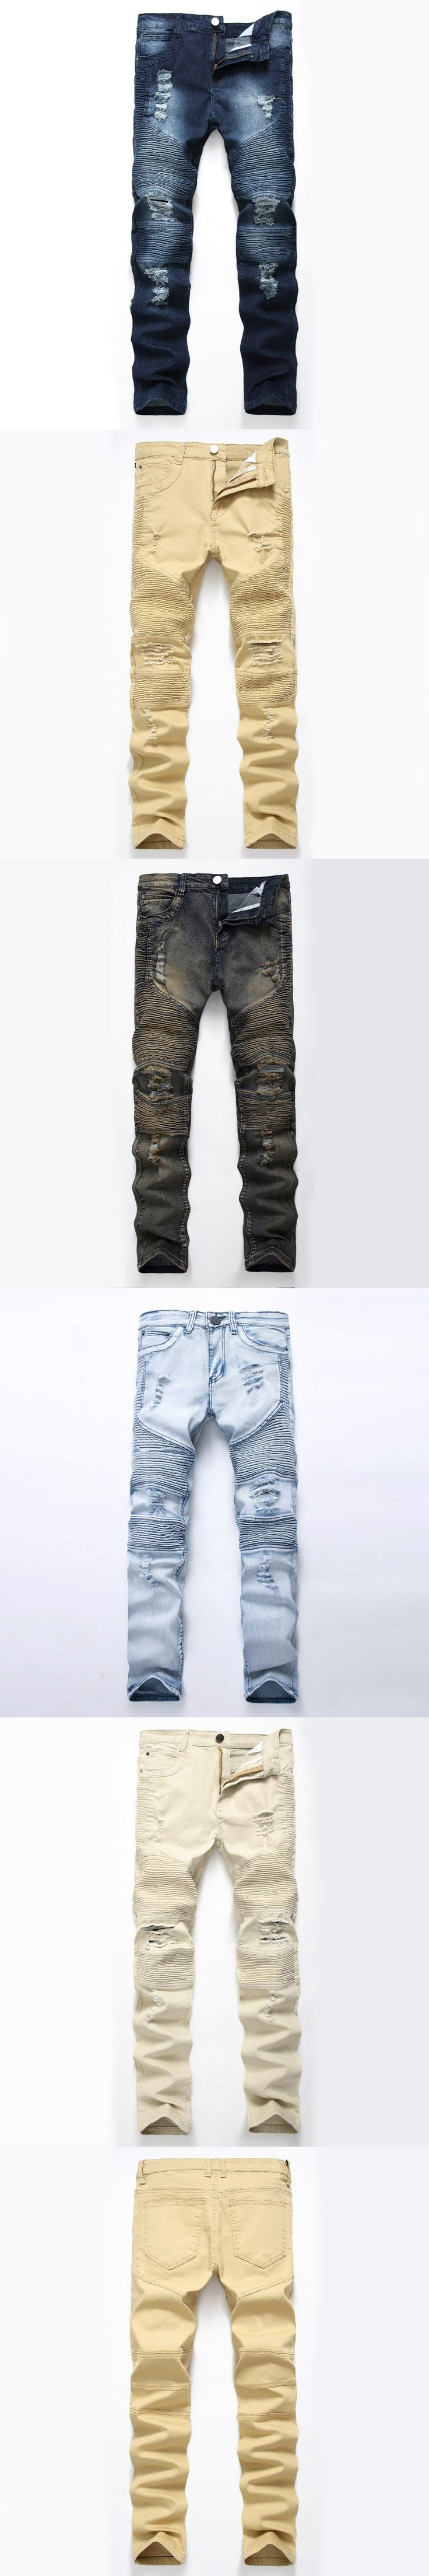 European Style Male Knee Ripped Ragged Jeans For Men Motorcycle Denim Biker Jeans Pants Long Mens Destroyed  Denim Trousers